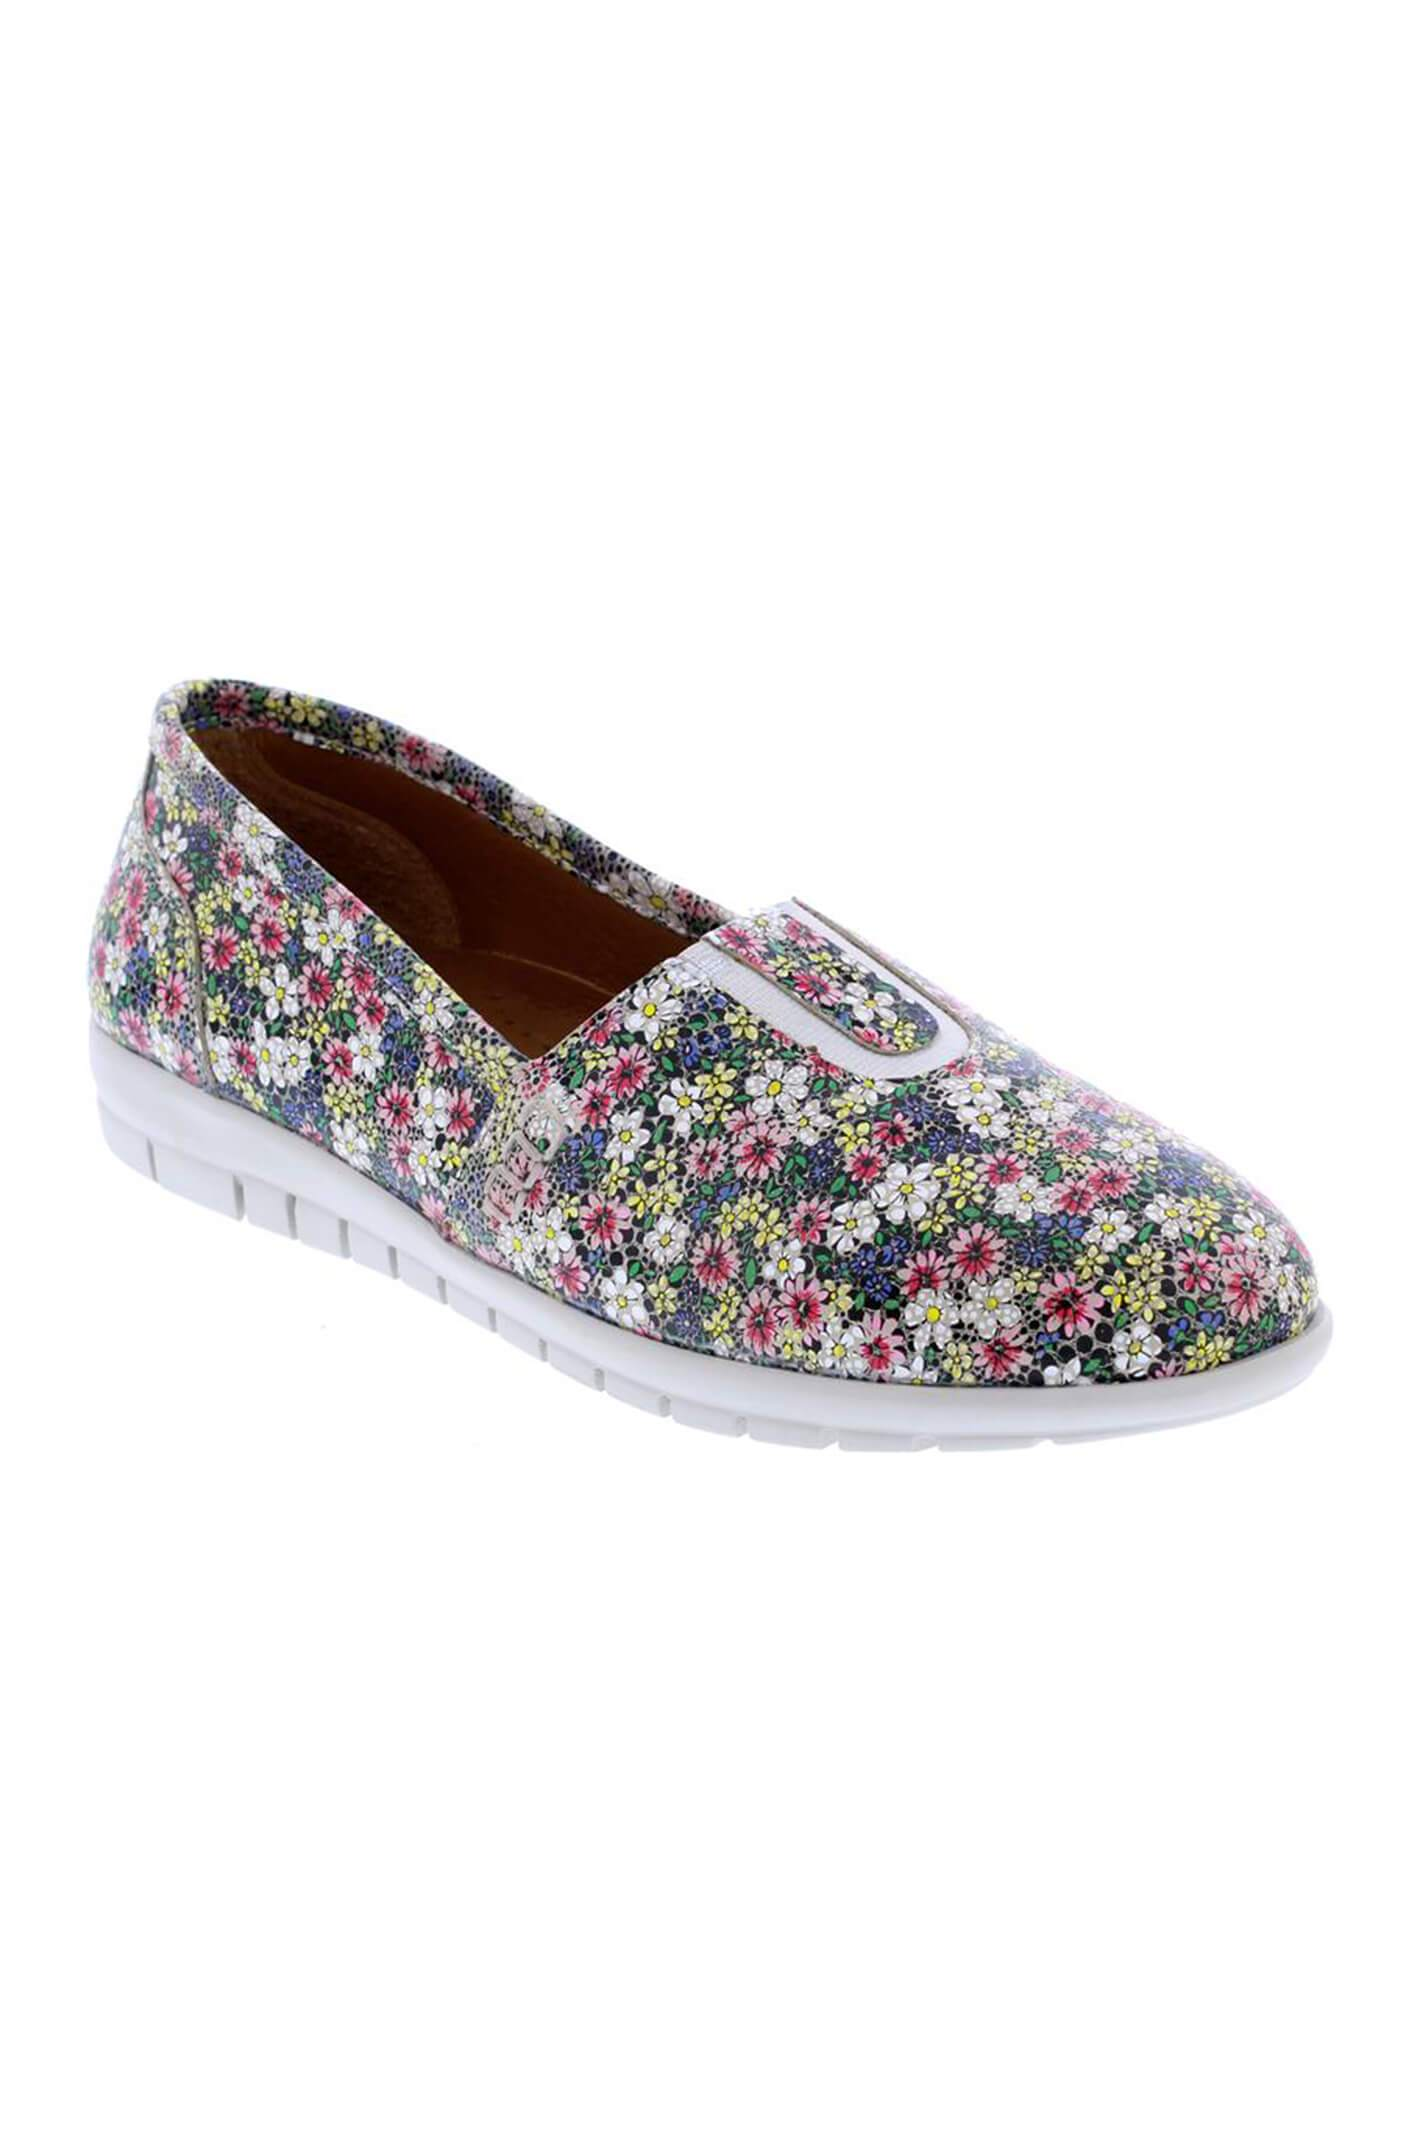 Adesso A6094 Rose Floral Leather Pumps 38 R